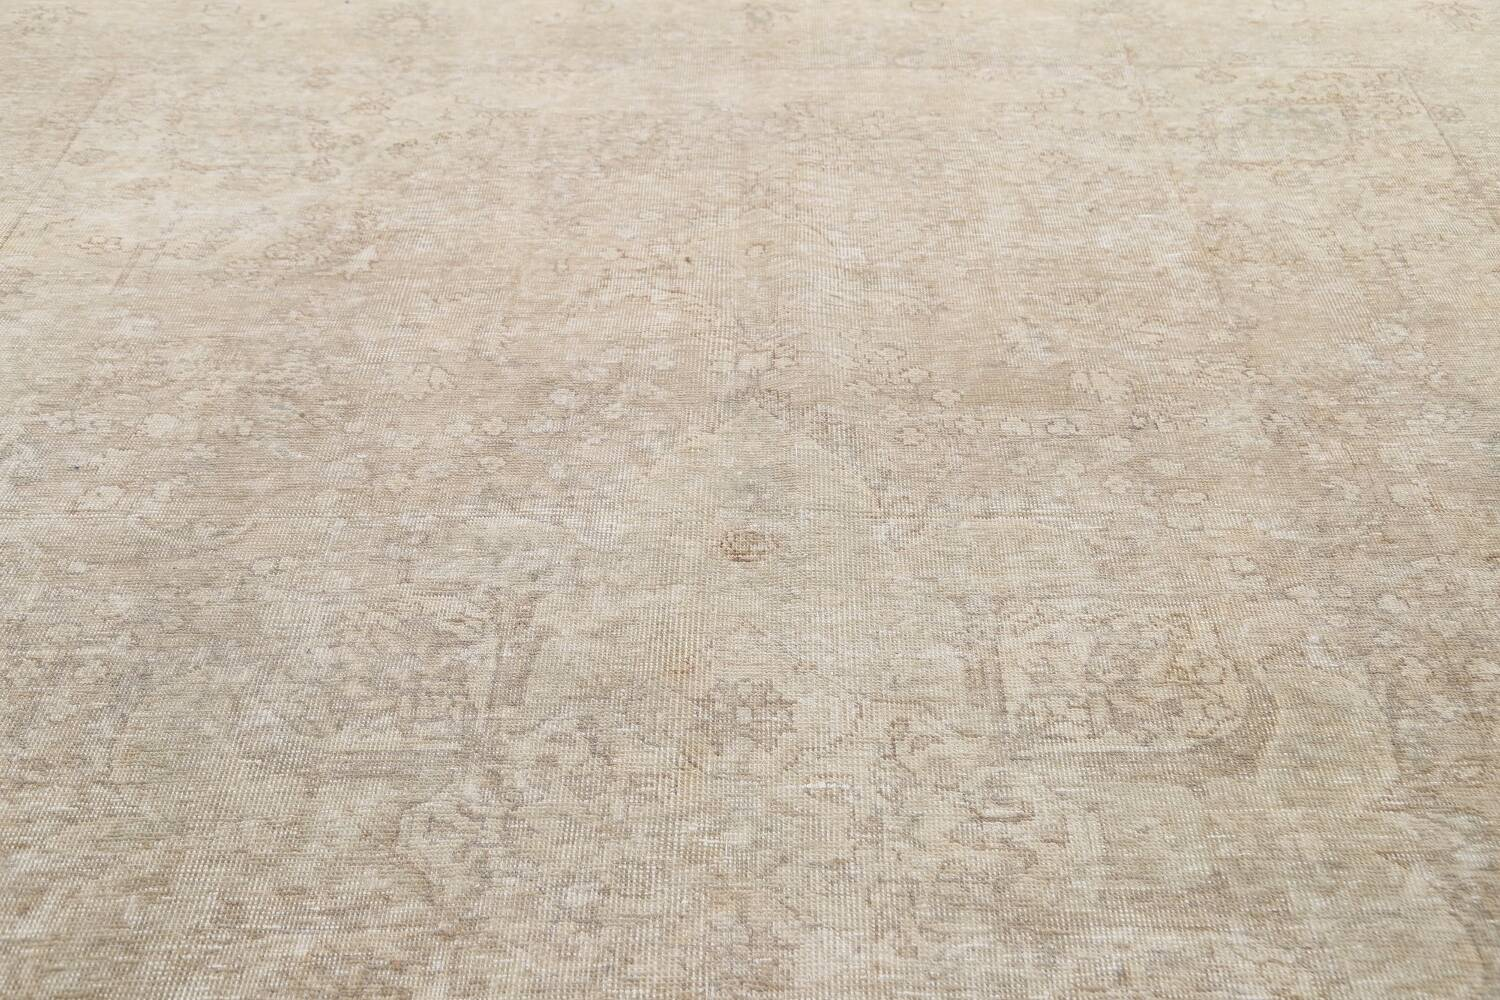 Muted Distressed Tabriz Persian Area Rug 9x12 image 11